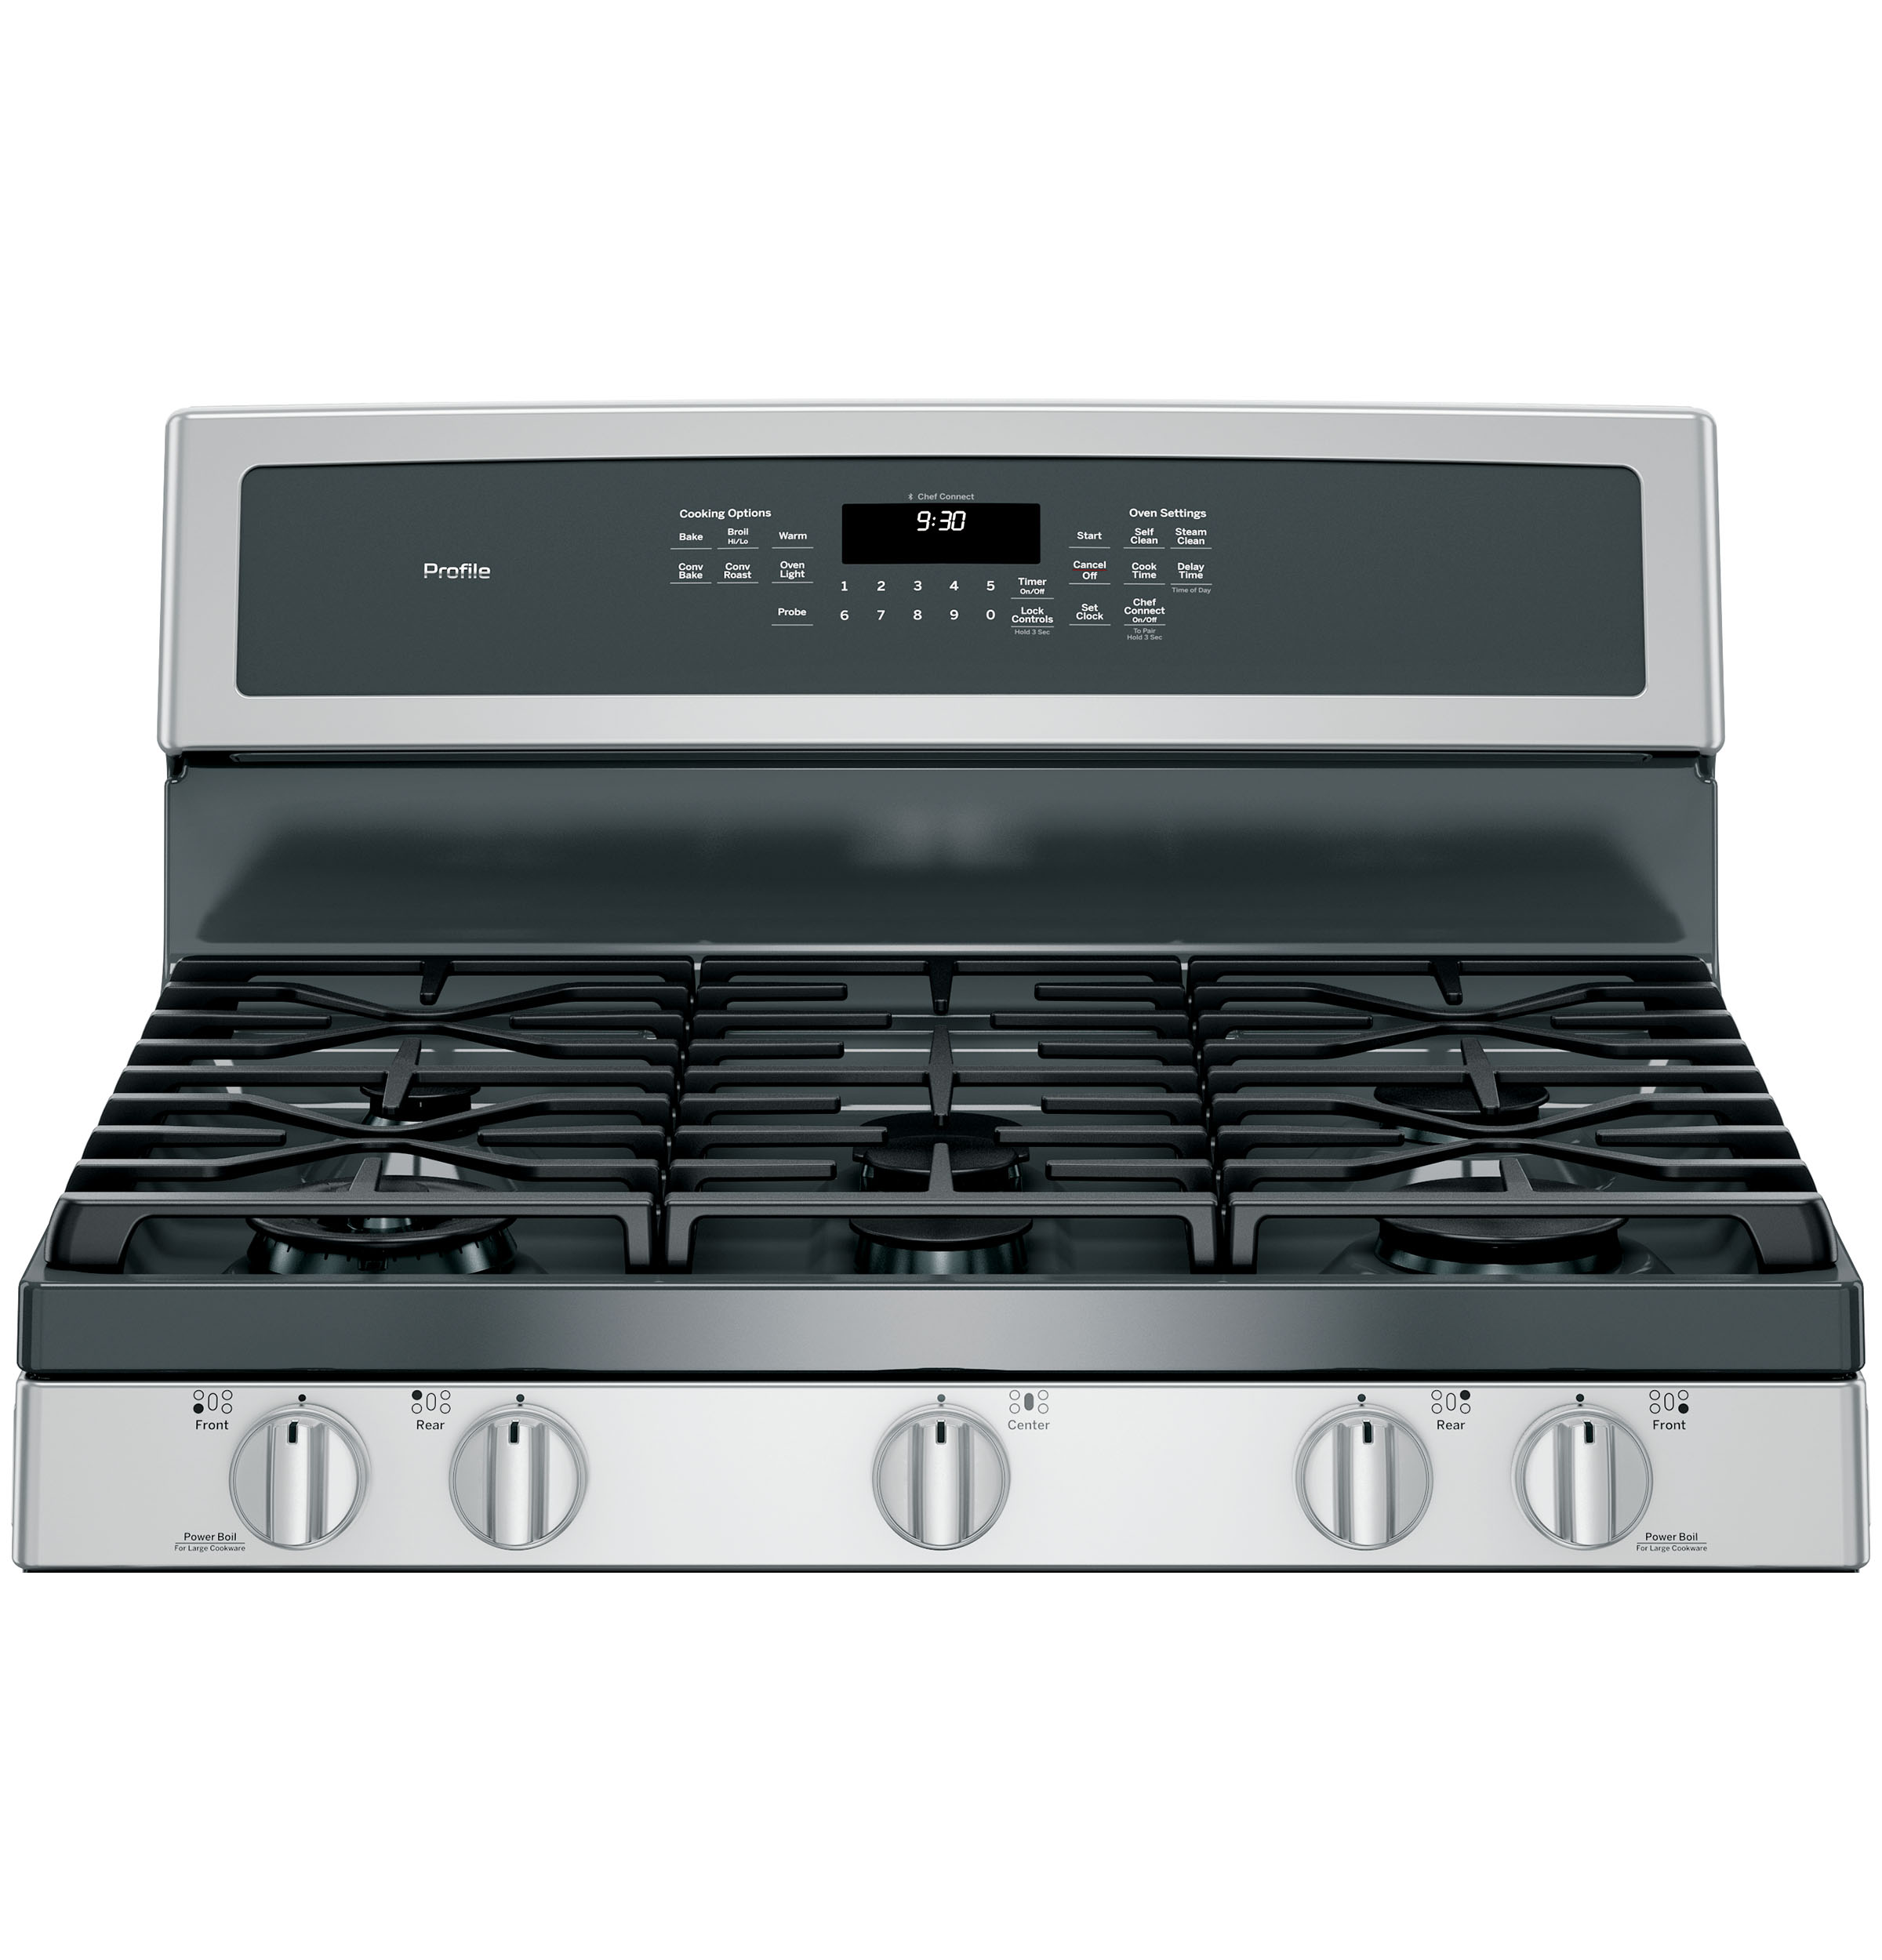 Ge Xl44 Gas Range Manual Self Cleaning - Product image product image product image